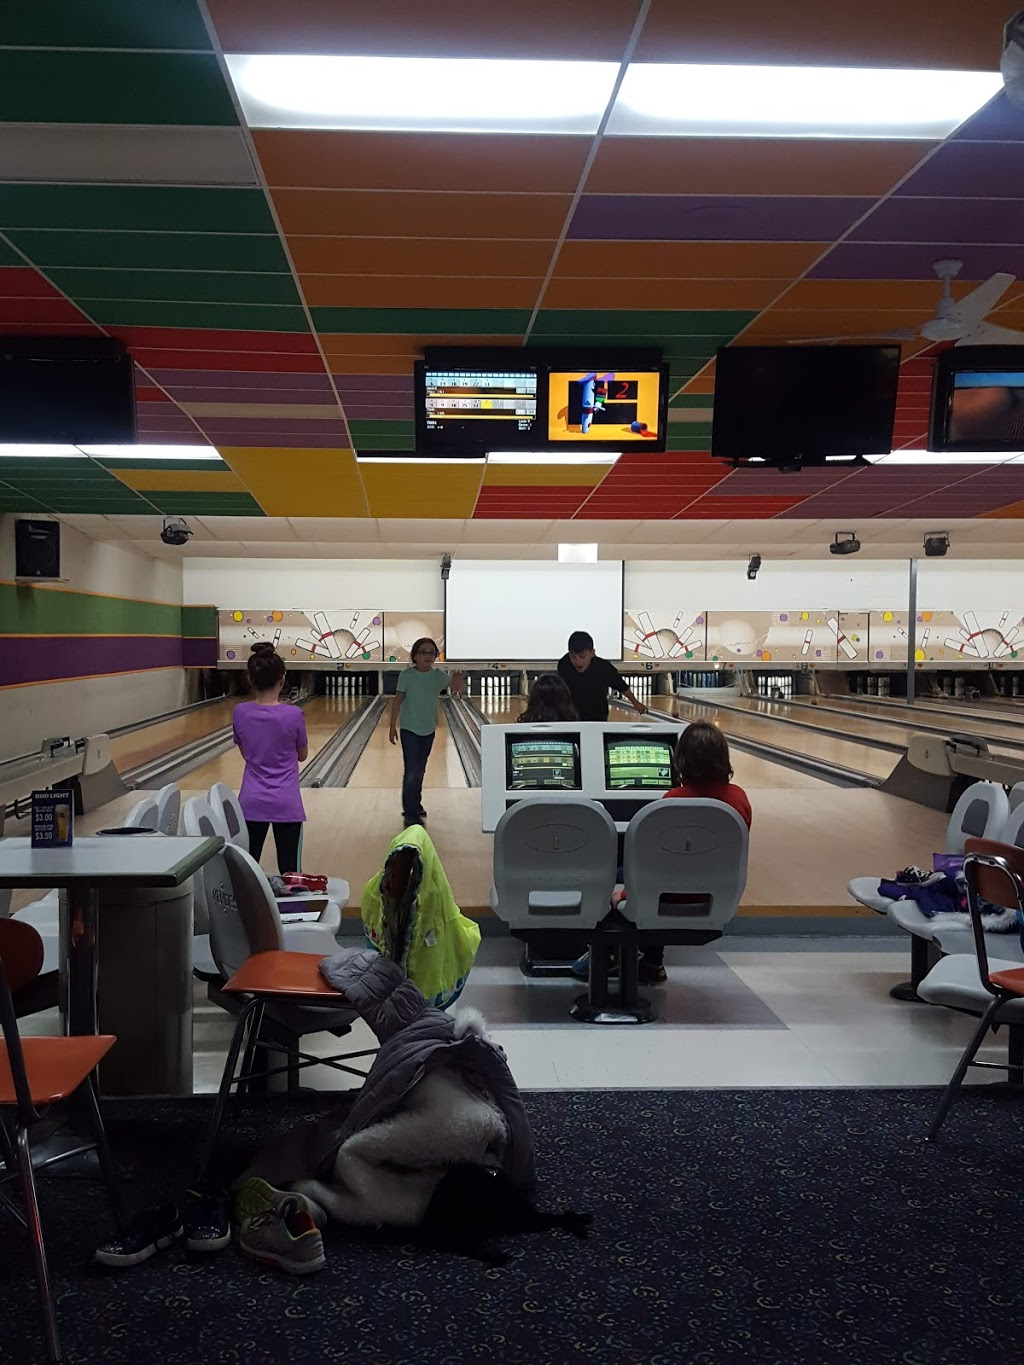 Bayberry Bowling Center - bowling alley  | Photo 3 of 10 | Address: 326 Main St, Spencer, MA 01562, USA | Phone: (508) 885-4876